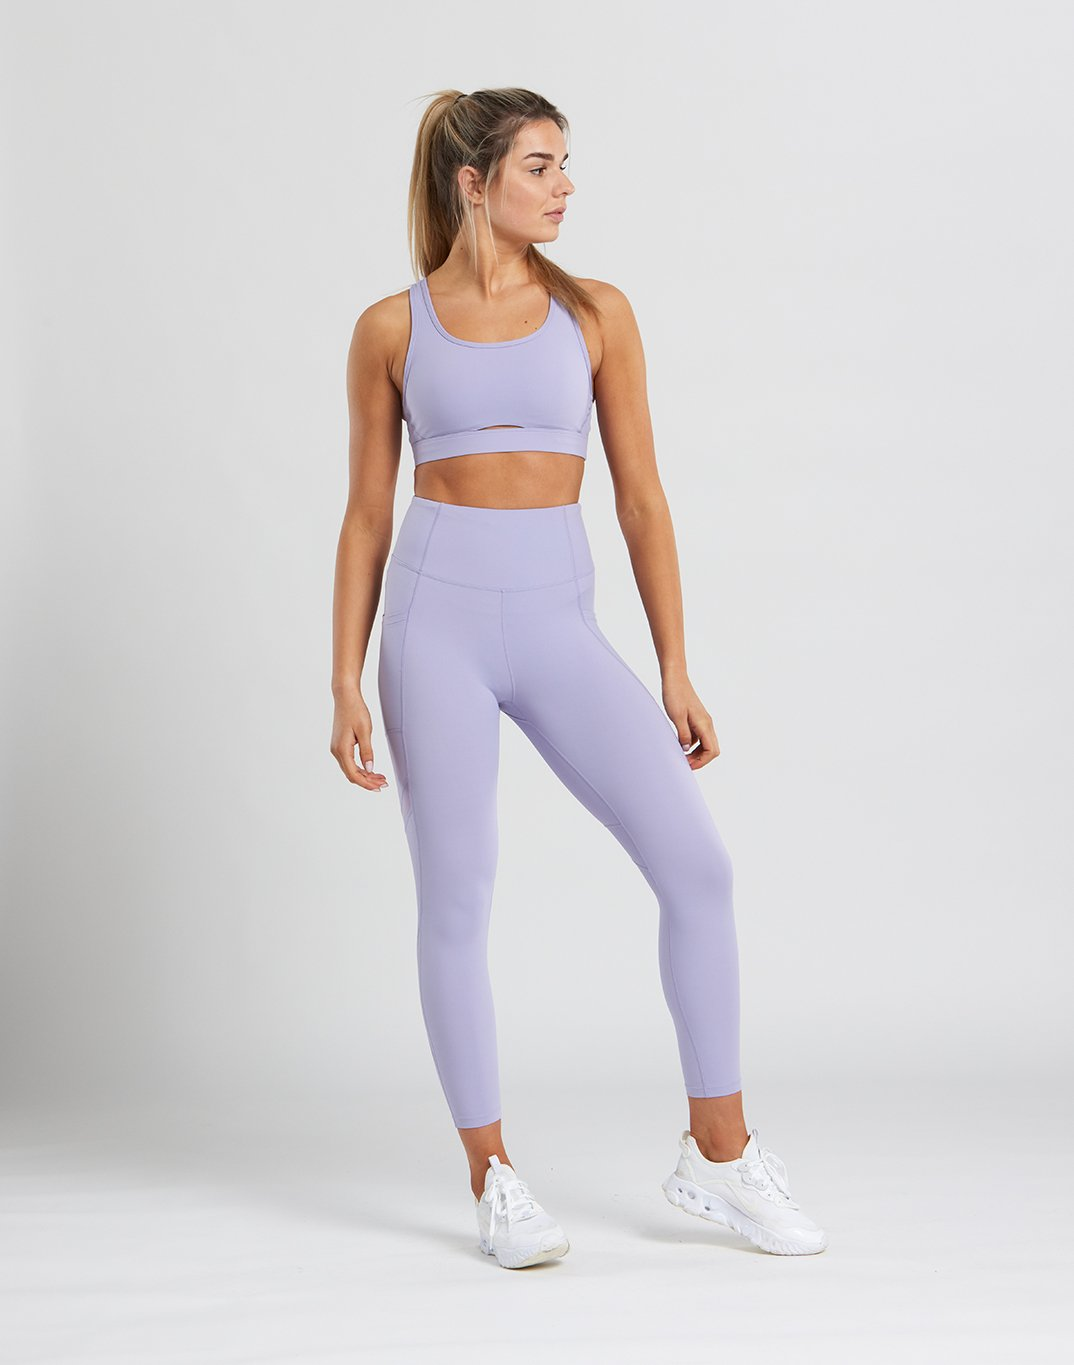 Gym Plus Coffee Leggings Womens Swift Mesh Leggings in Desert Lilac Designed in Ireland